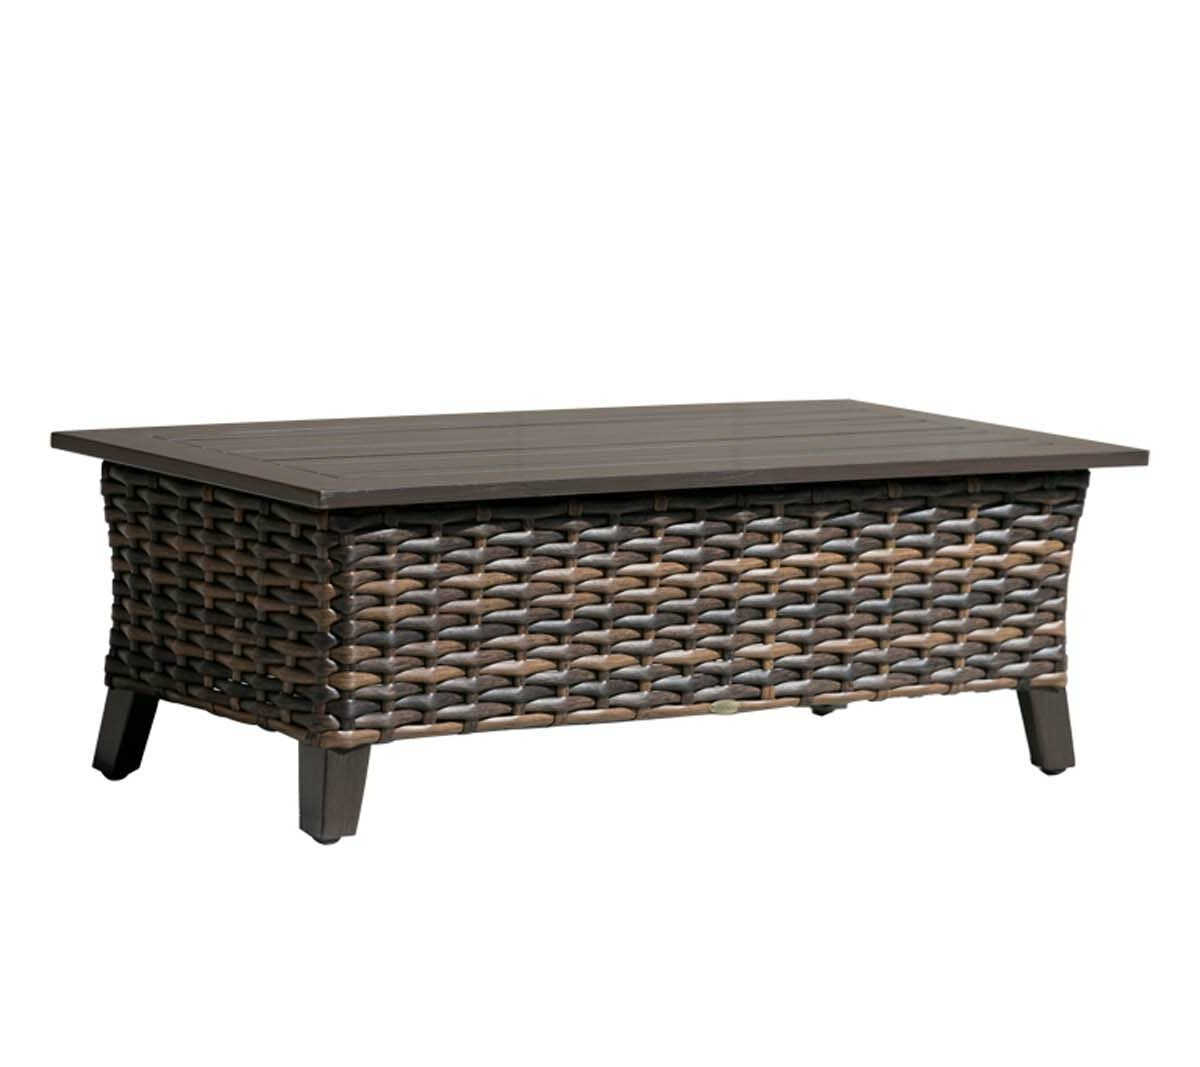 The Whidbey Island coffee table in brown wicker.